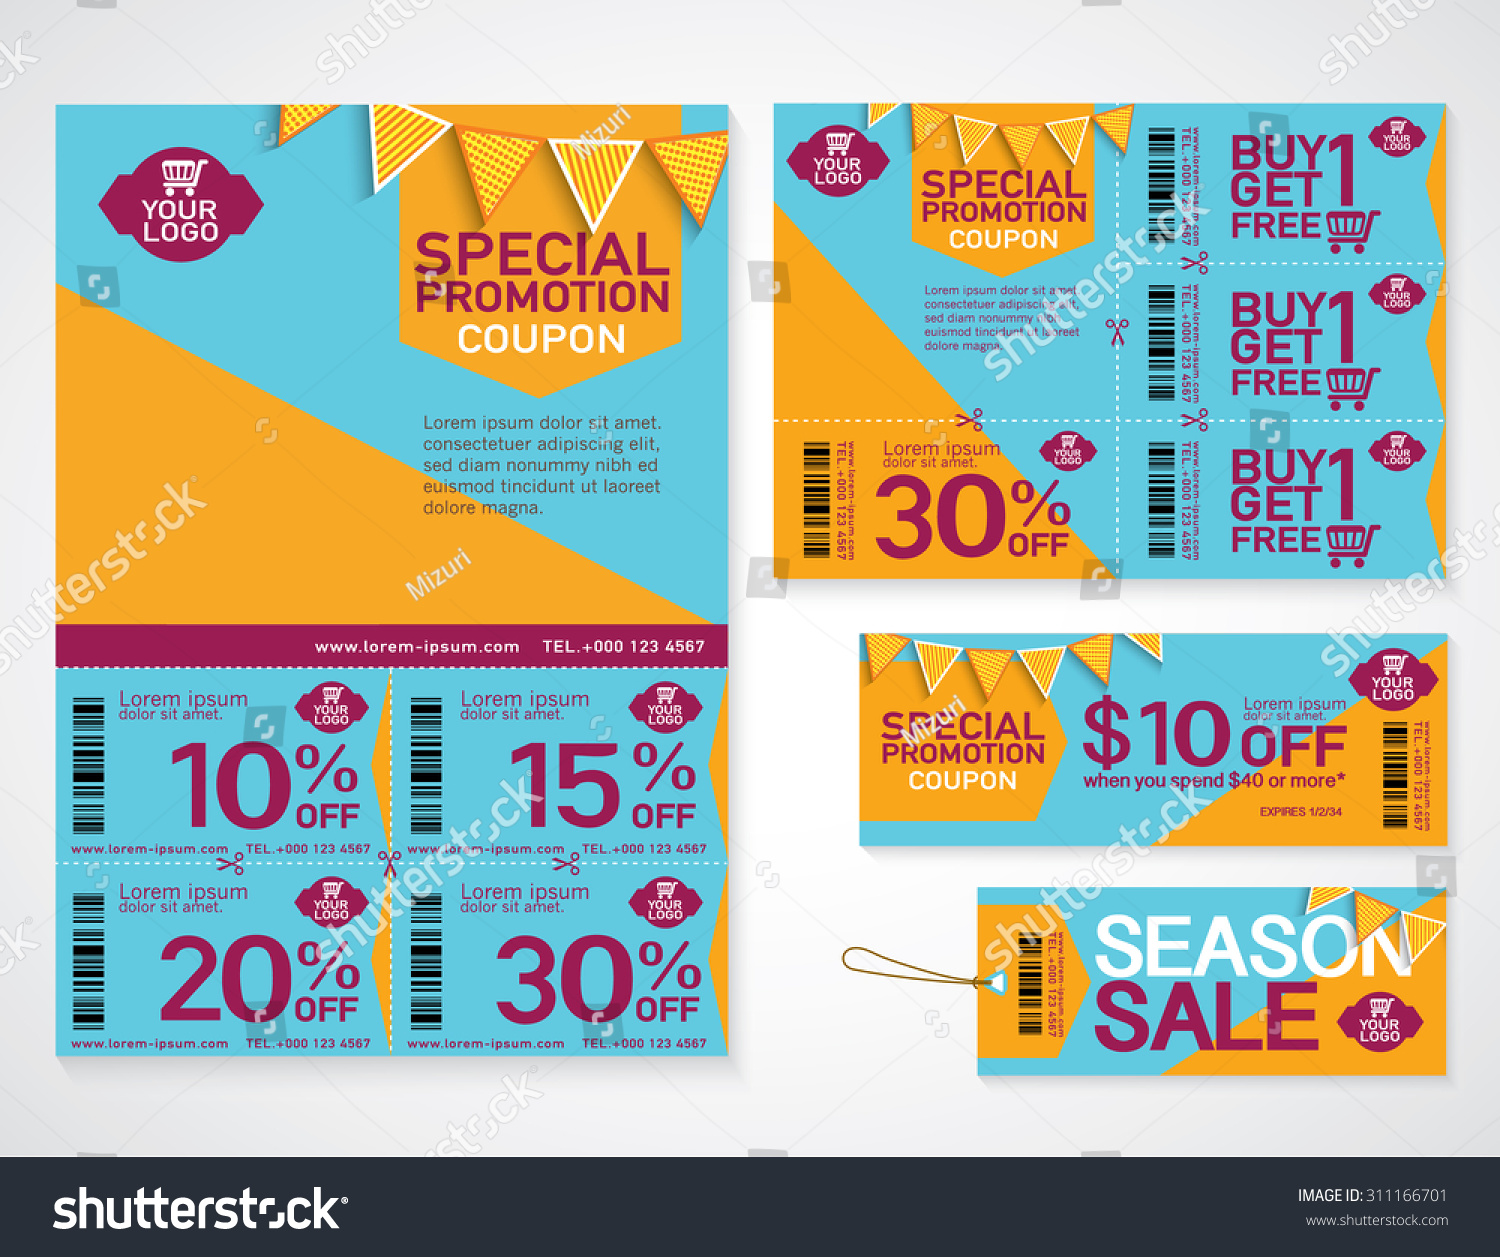 flyer promotions coupon banner design stock vector  flyer promotions coupon or banner design best discount offers special price